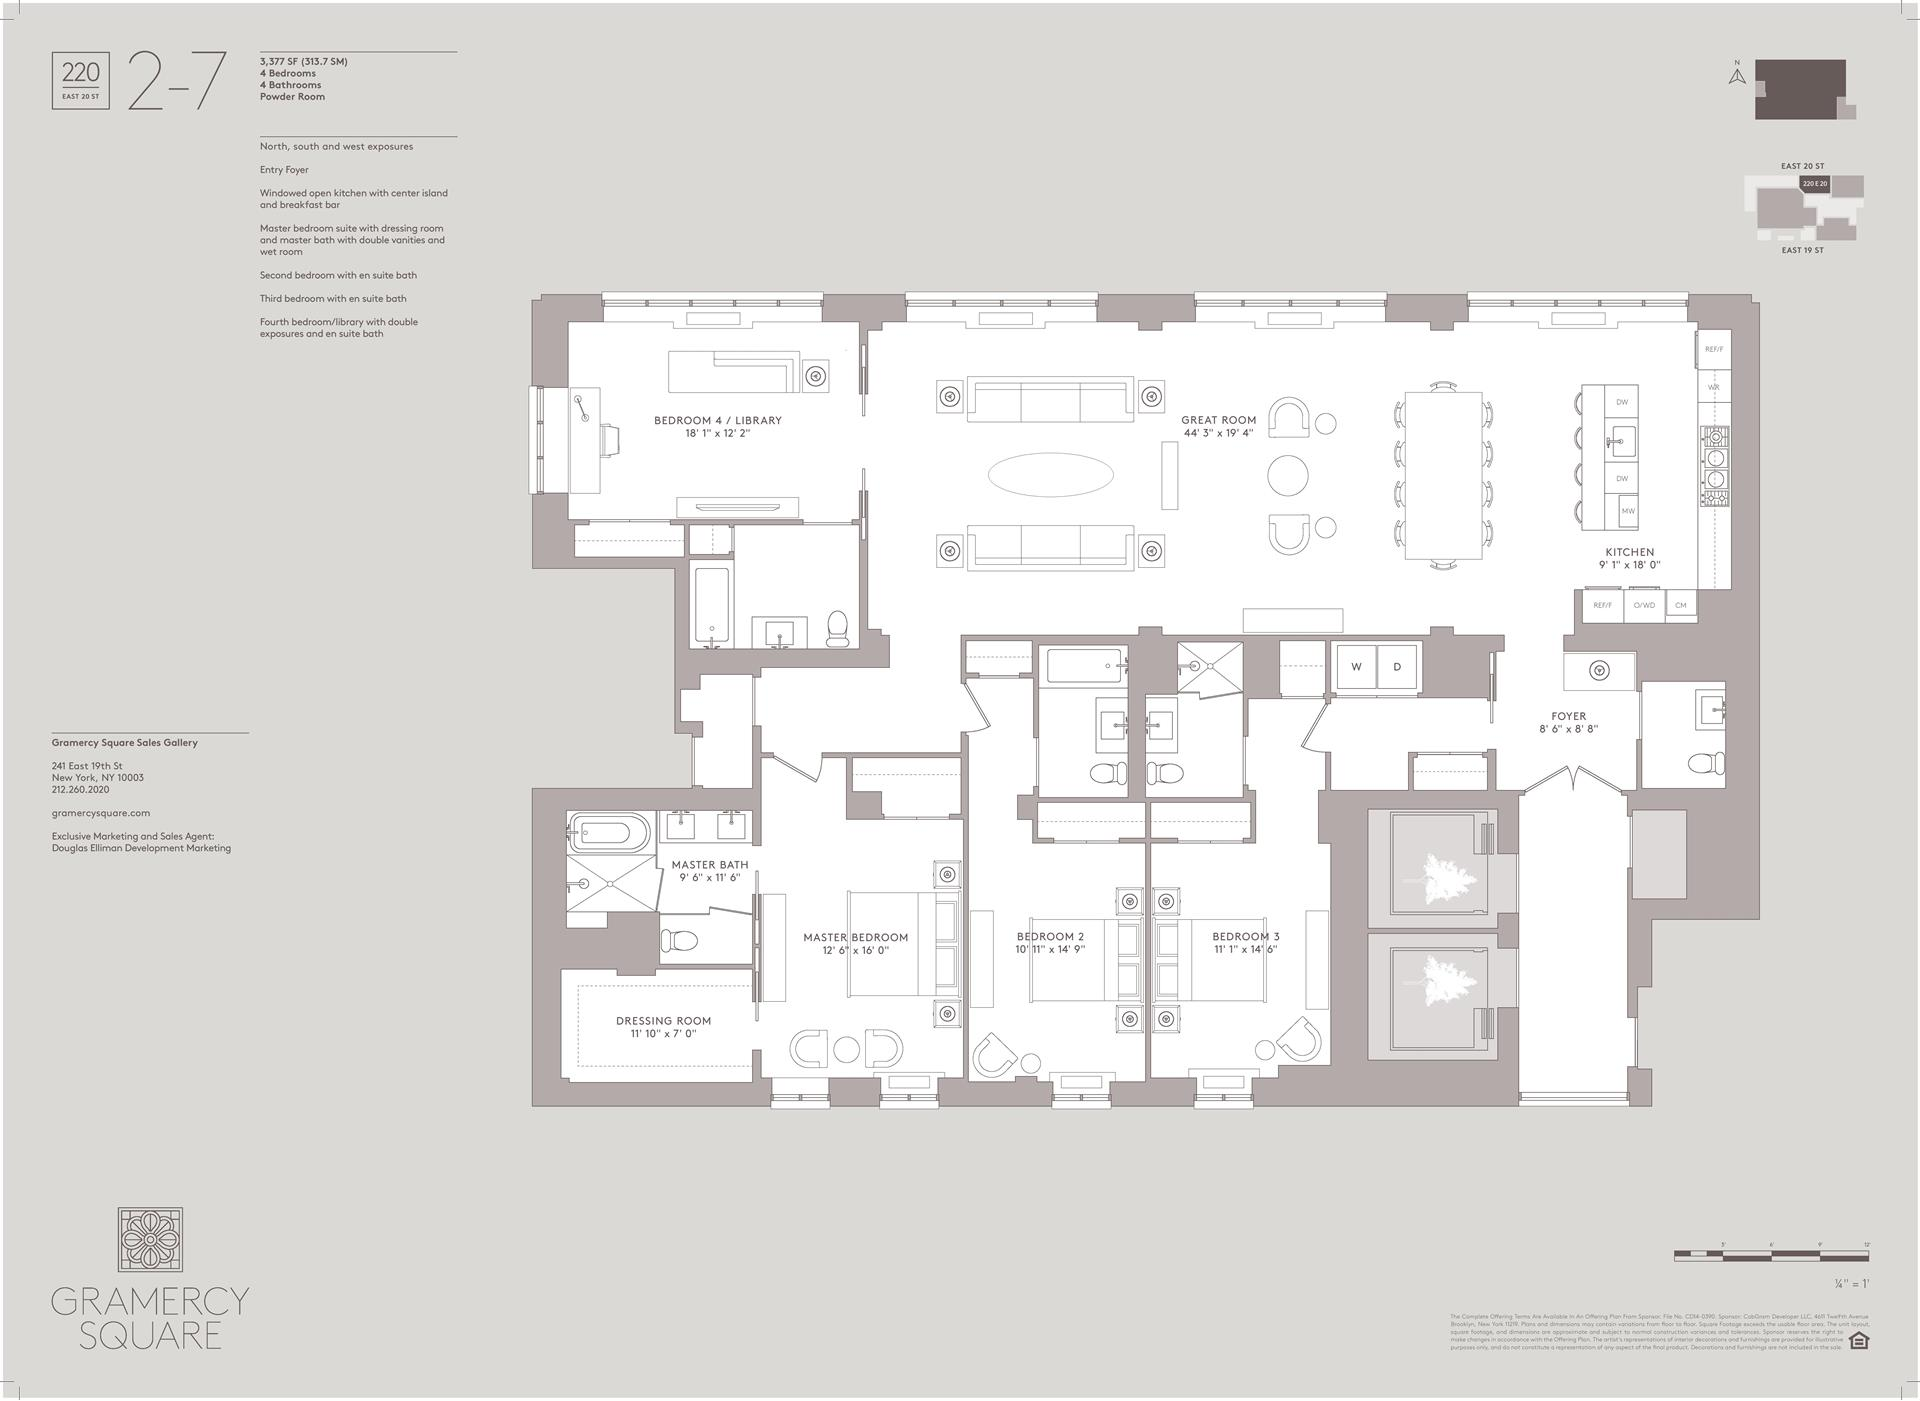 Floor plan of Gramercy Square, 220 East 20th St, 5 - Gramercy - Union Square, New York